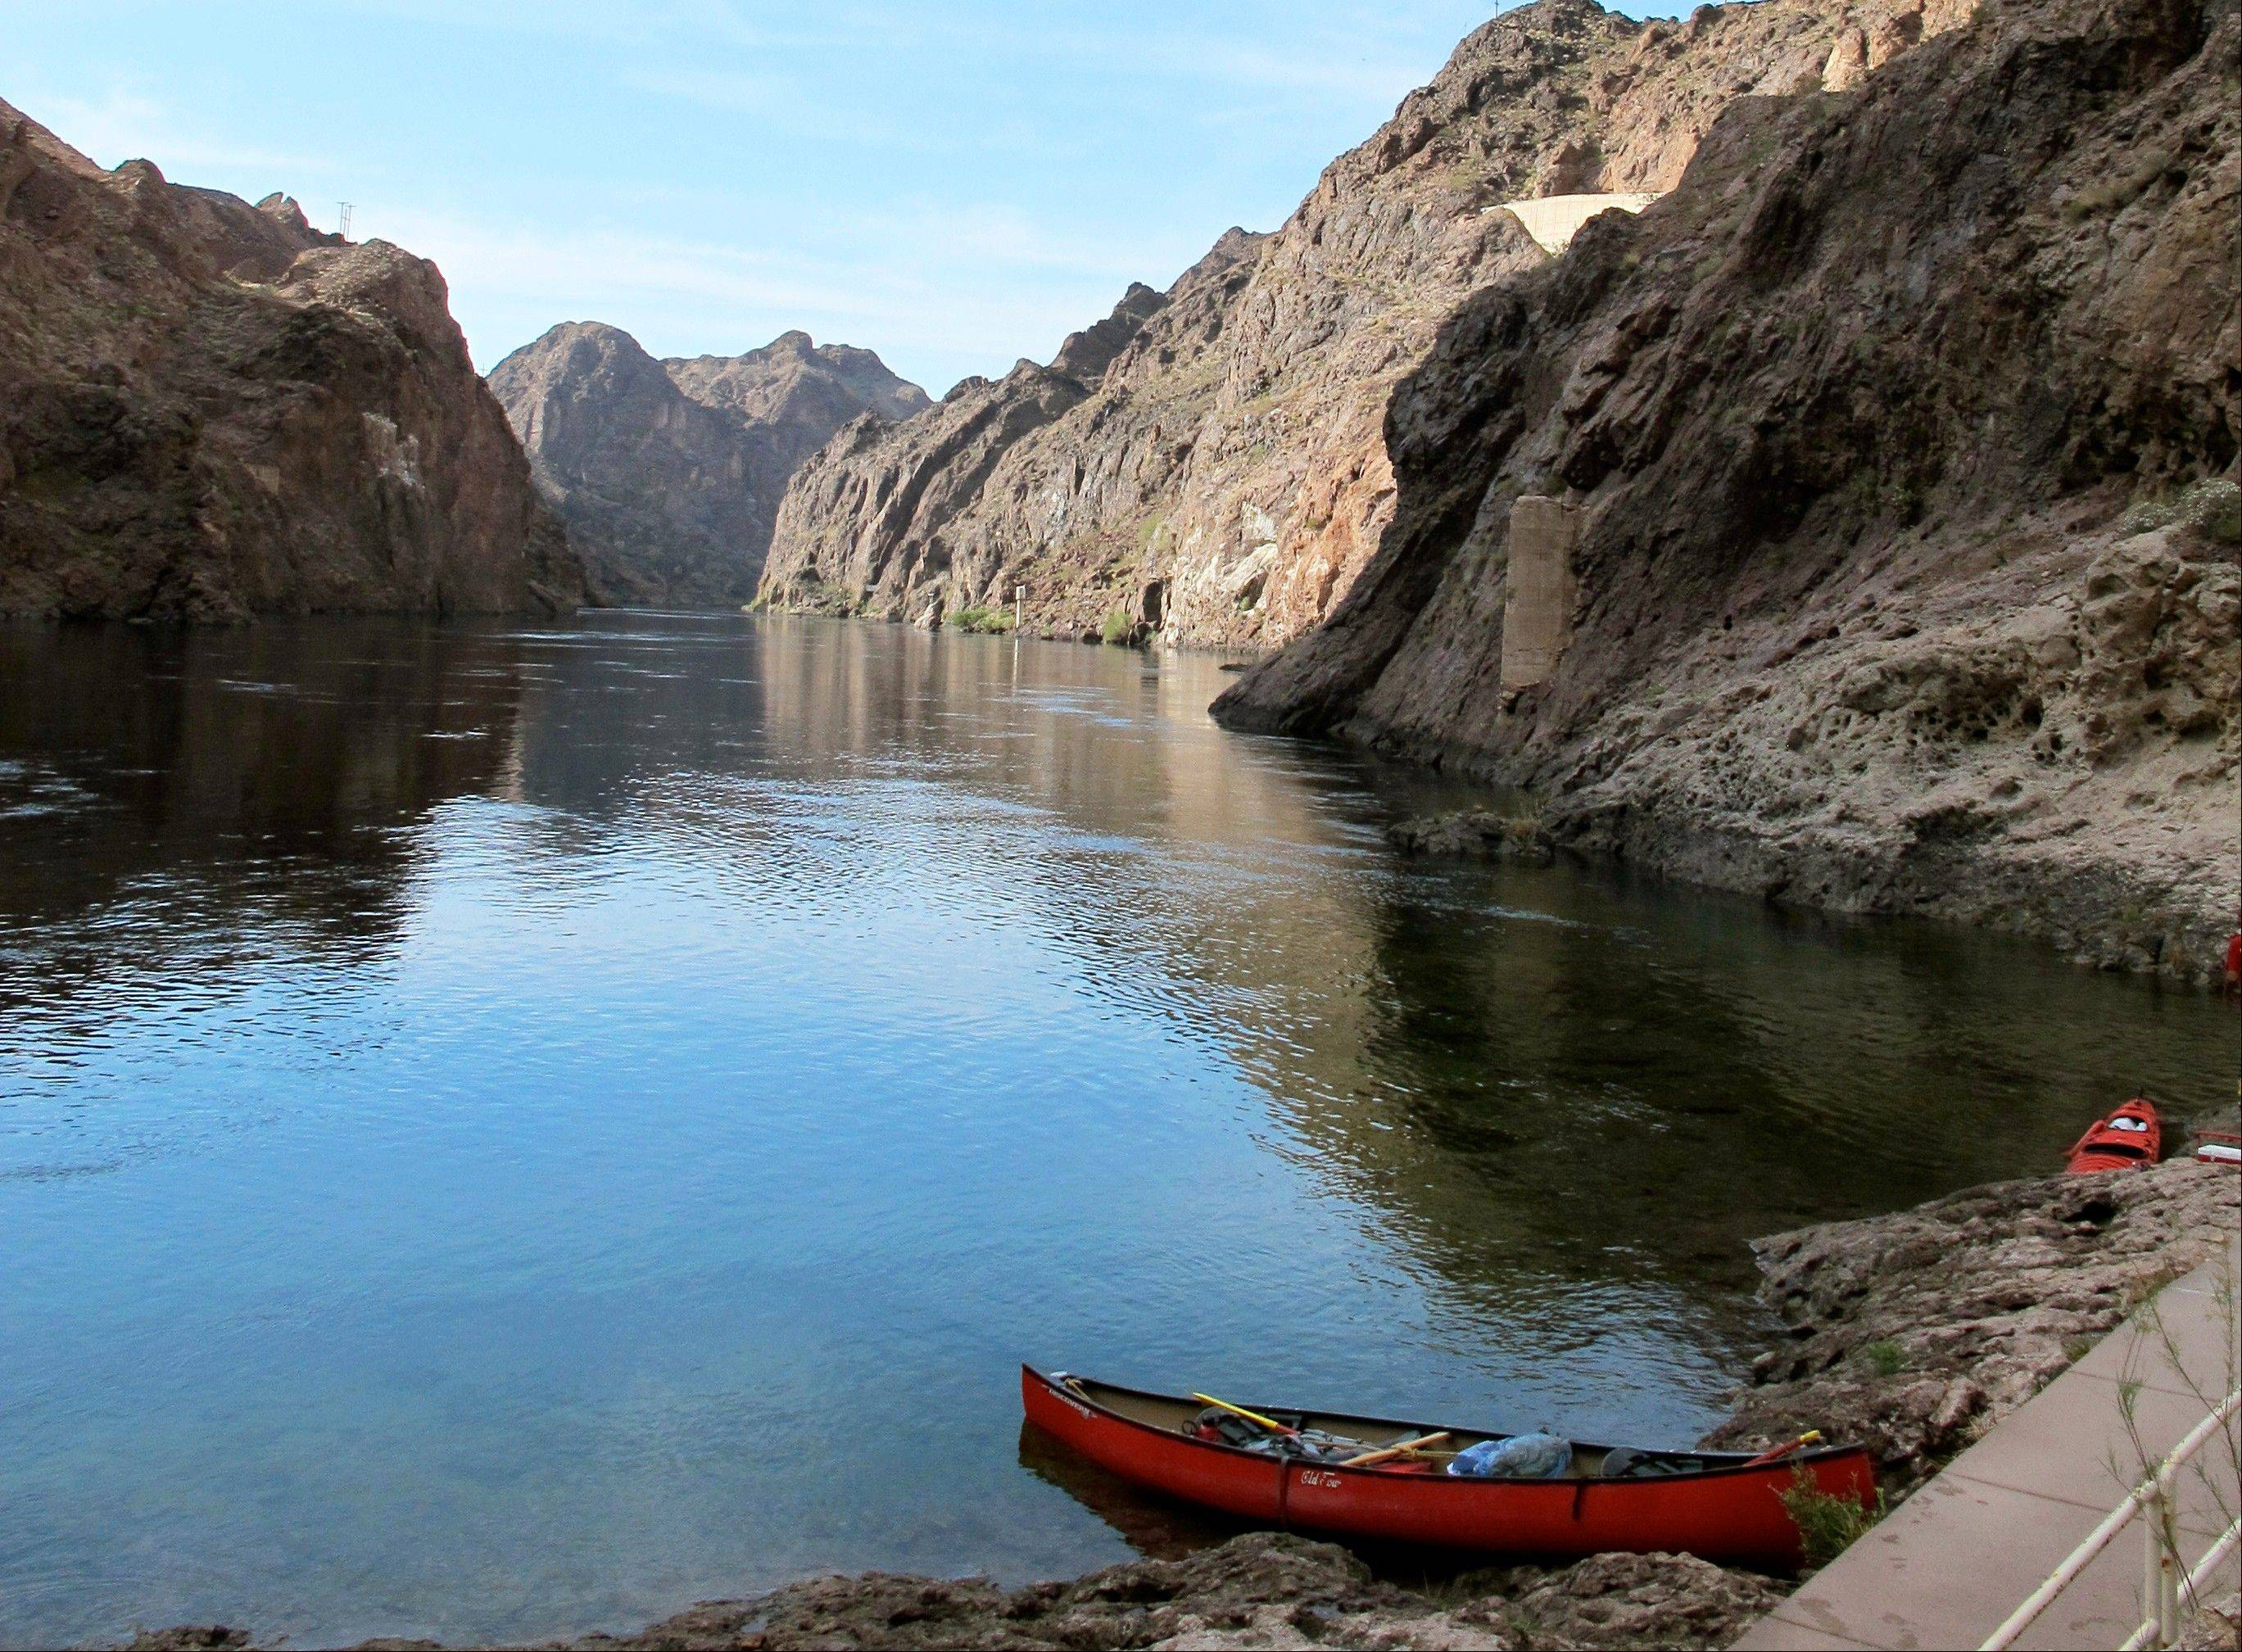 The Colorado River snakes through the Black Canyon near Boulder City, Nev. Watercraft must be transported through a federal security zone near the Hoover Dam by an authorized livery service, whether you bring your own gear, rent watercraft or sign up for a guided trip.